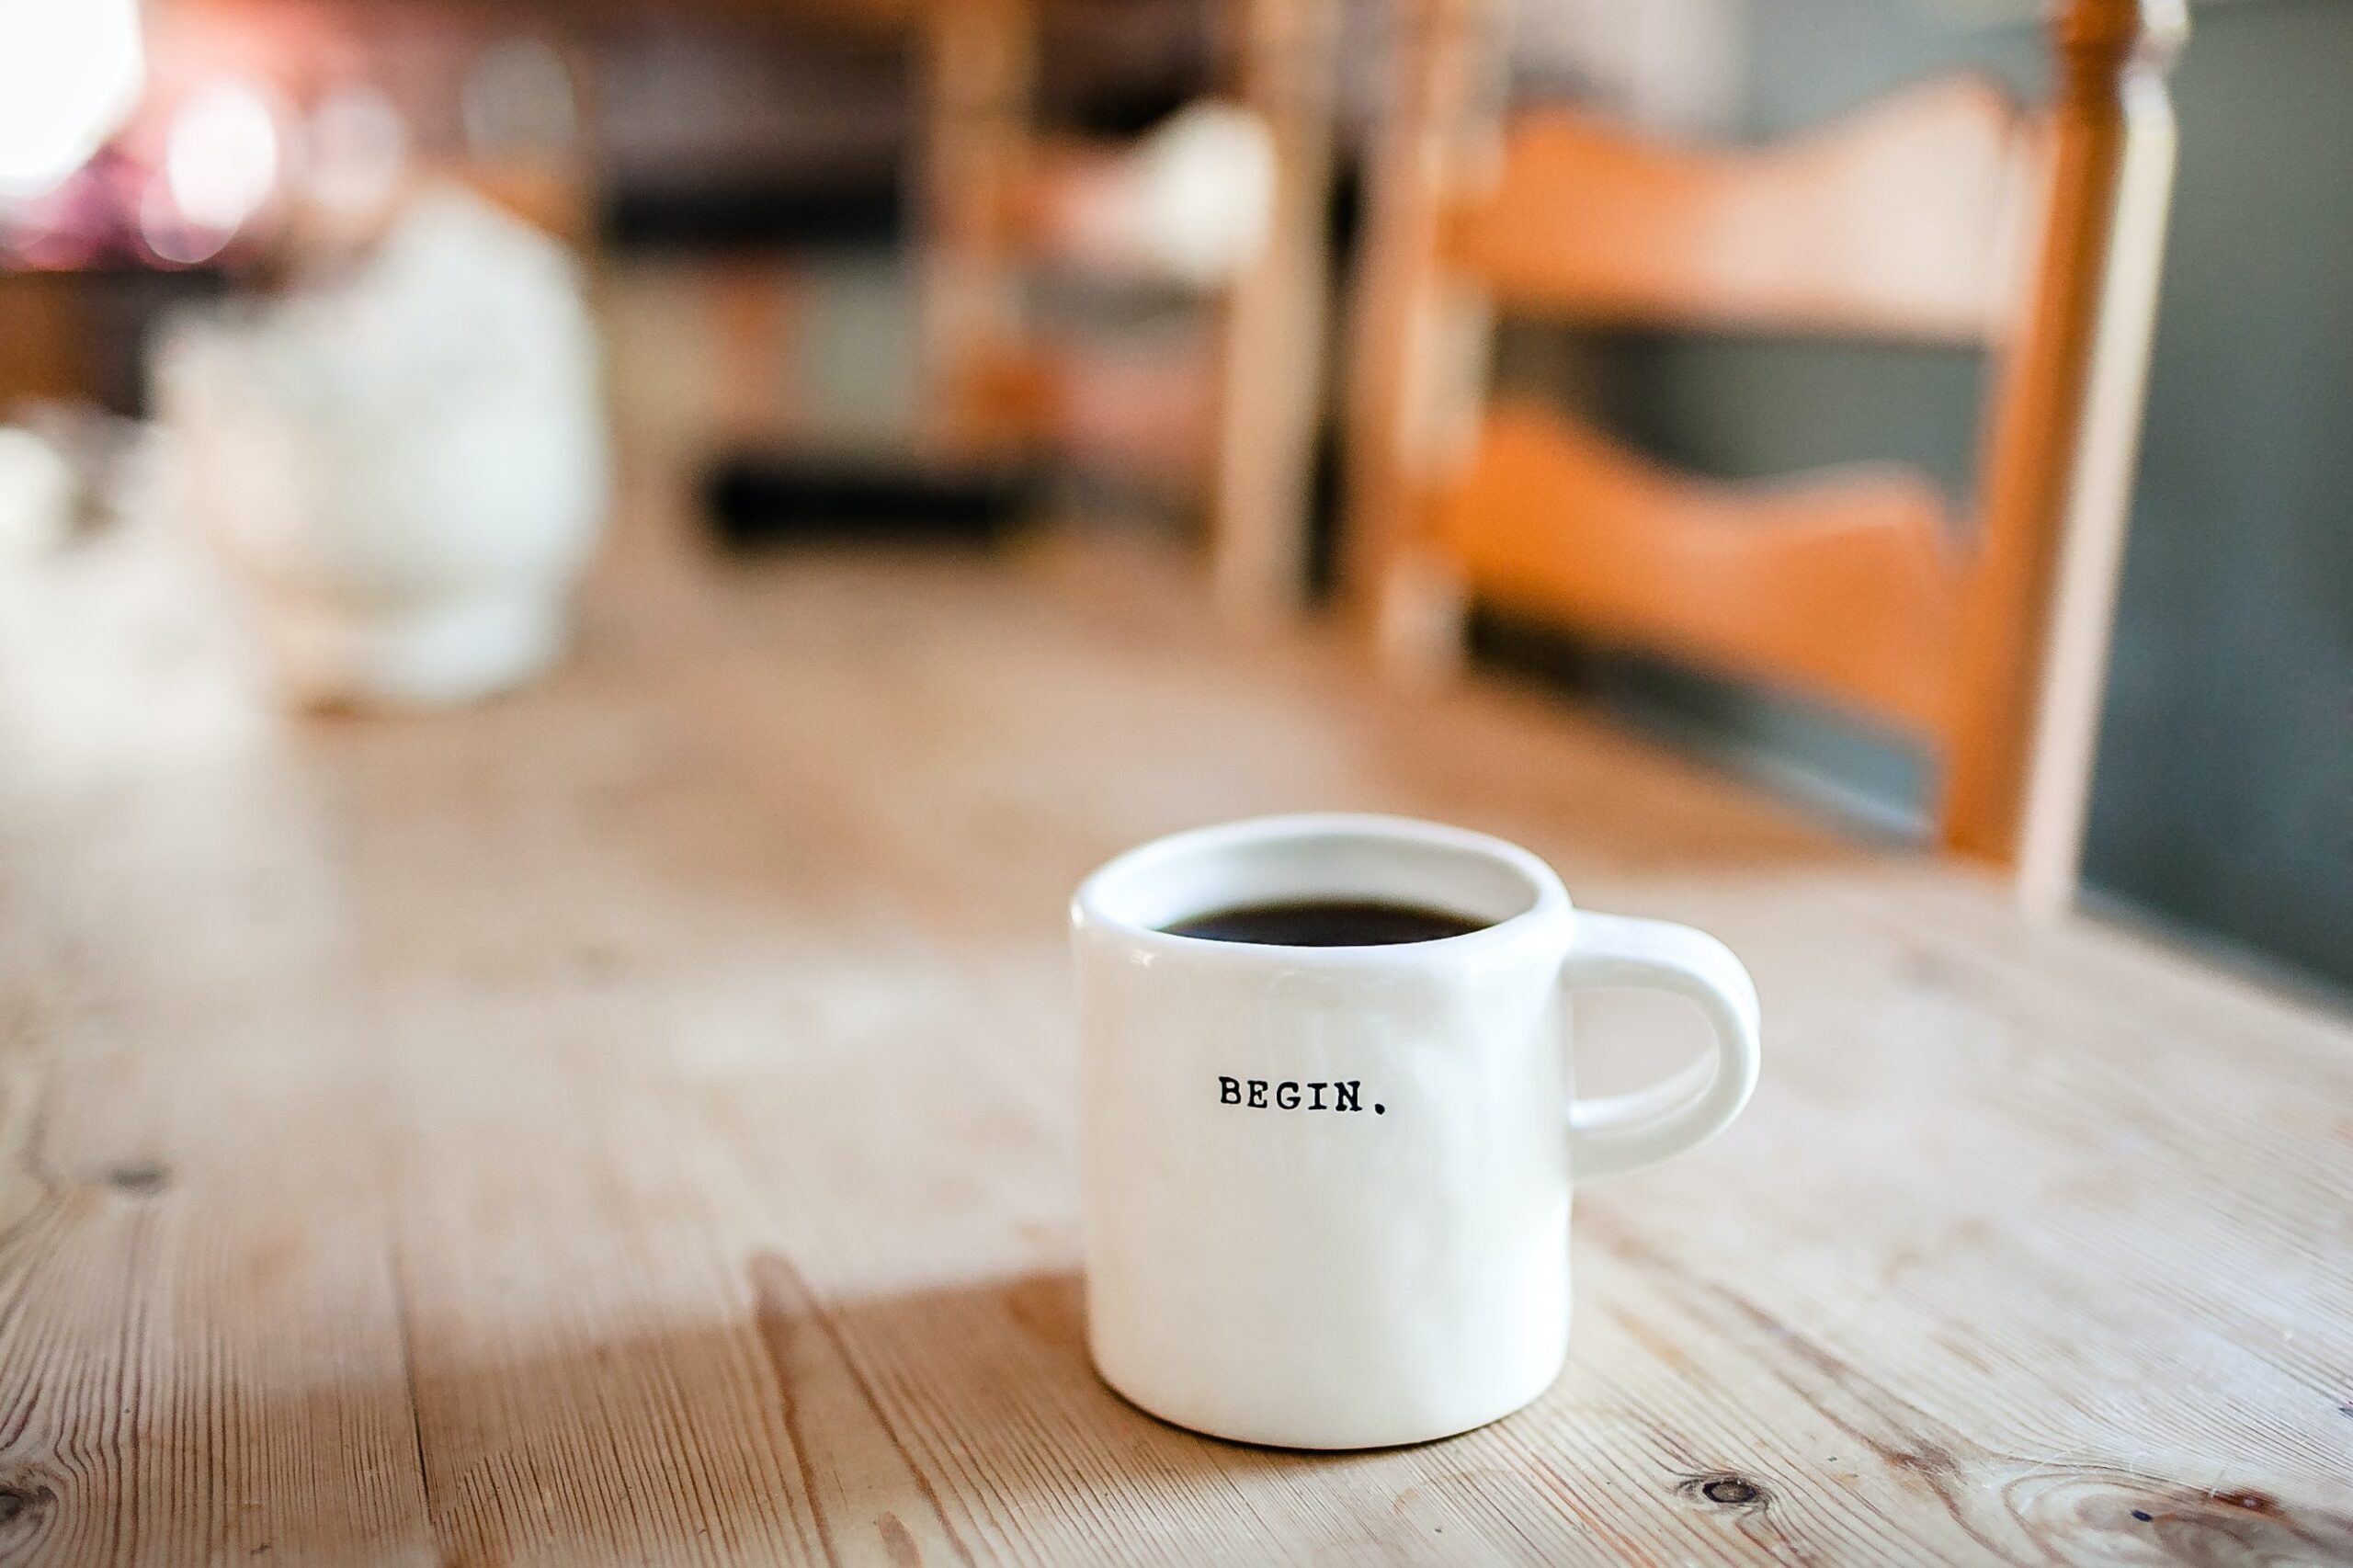 White cup full of black coffee, with 'begin' written in black capitals on the side. On a wooden table with wooden chairs.